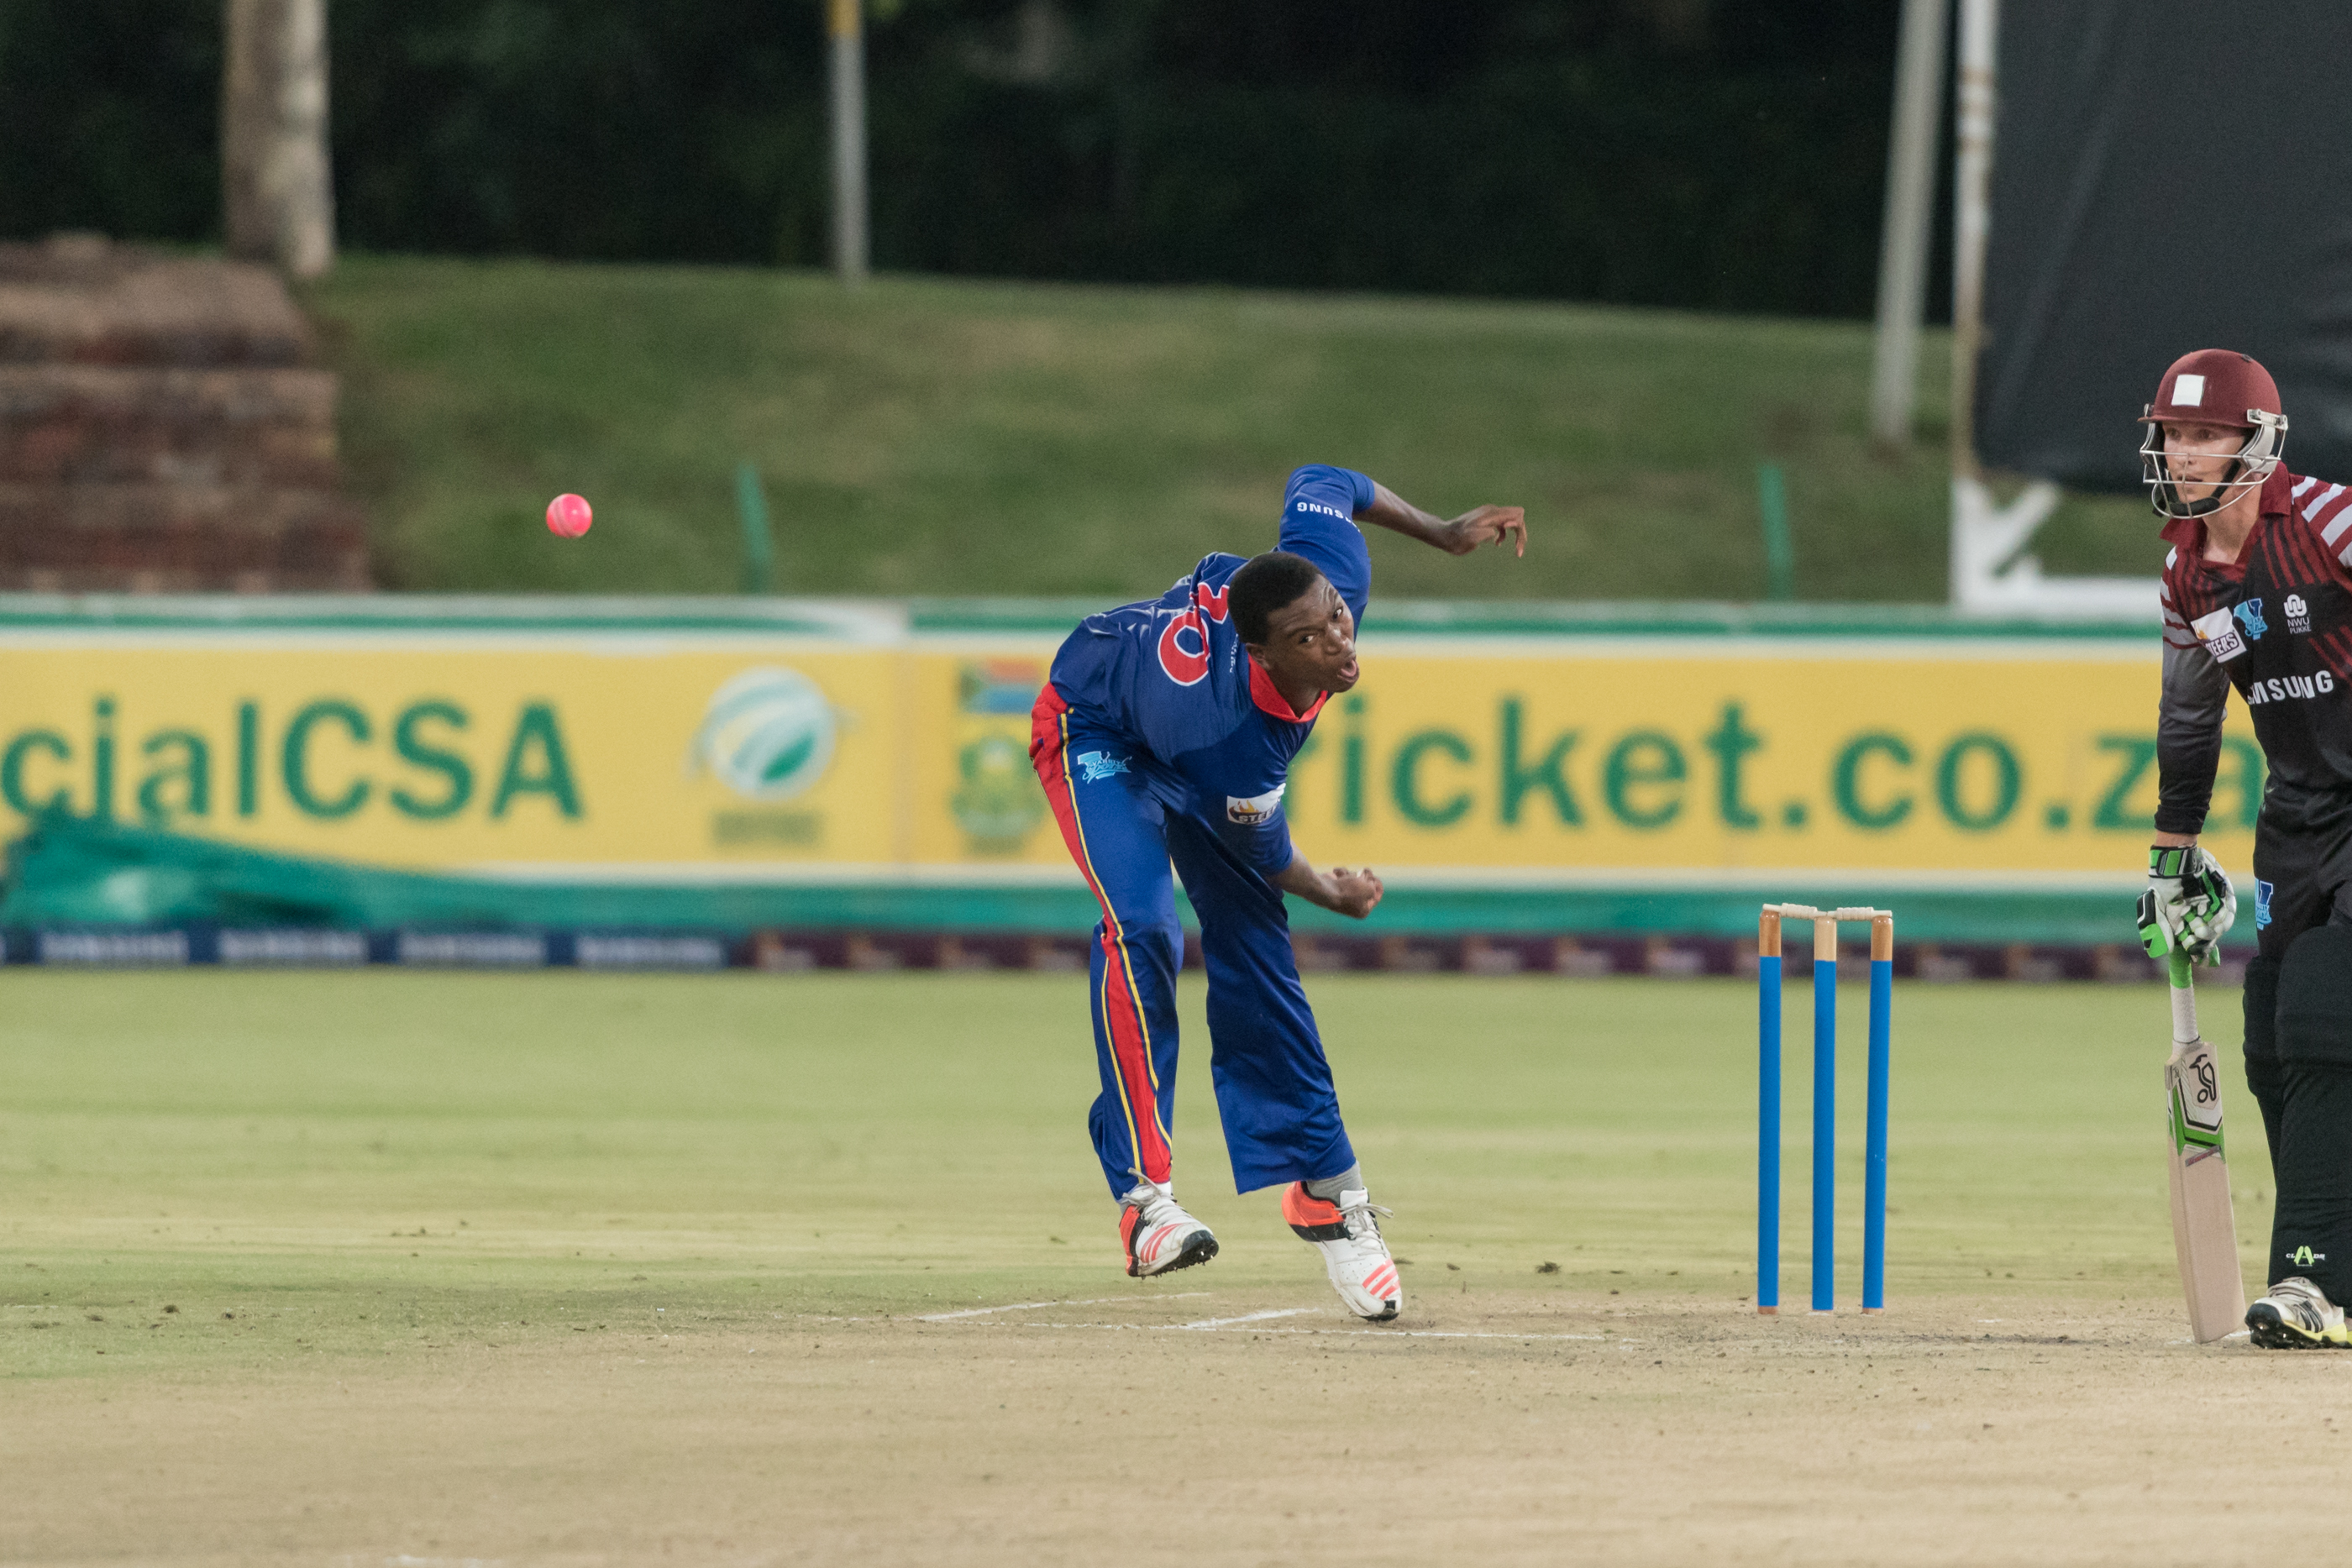 Tuks provide four members of national academy squad